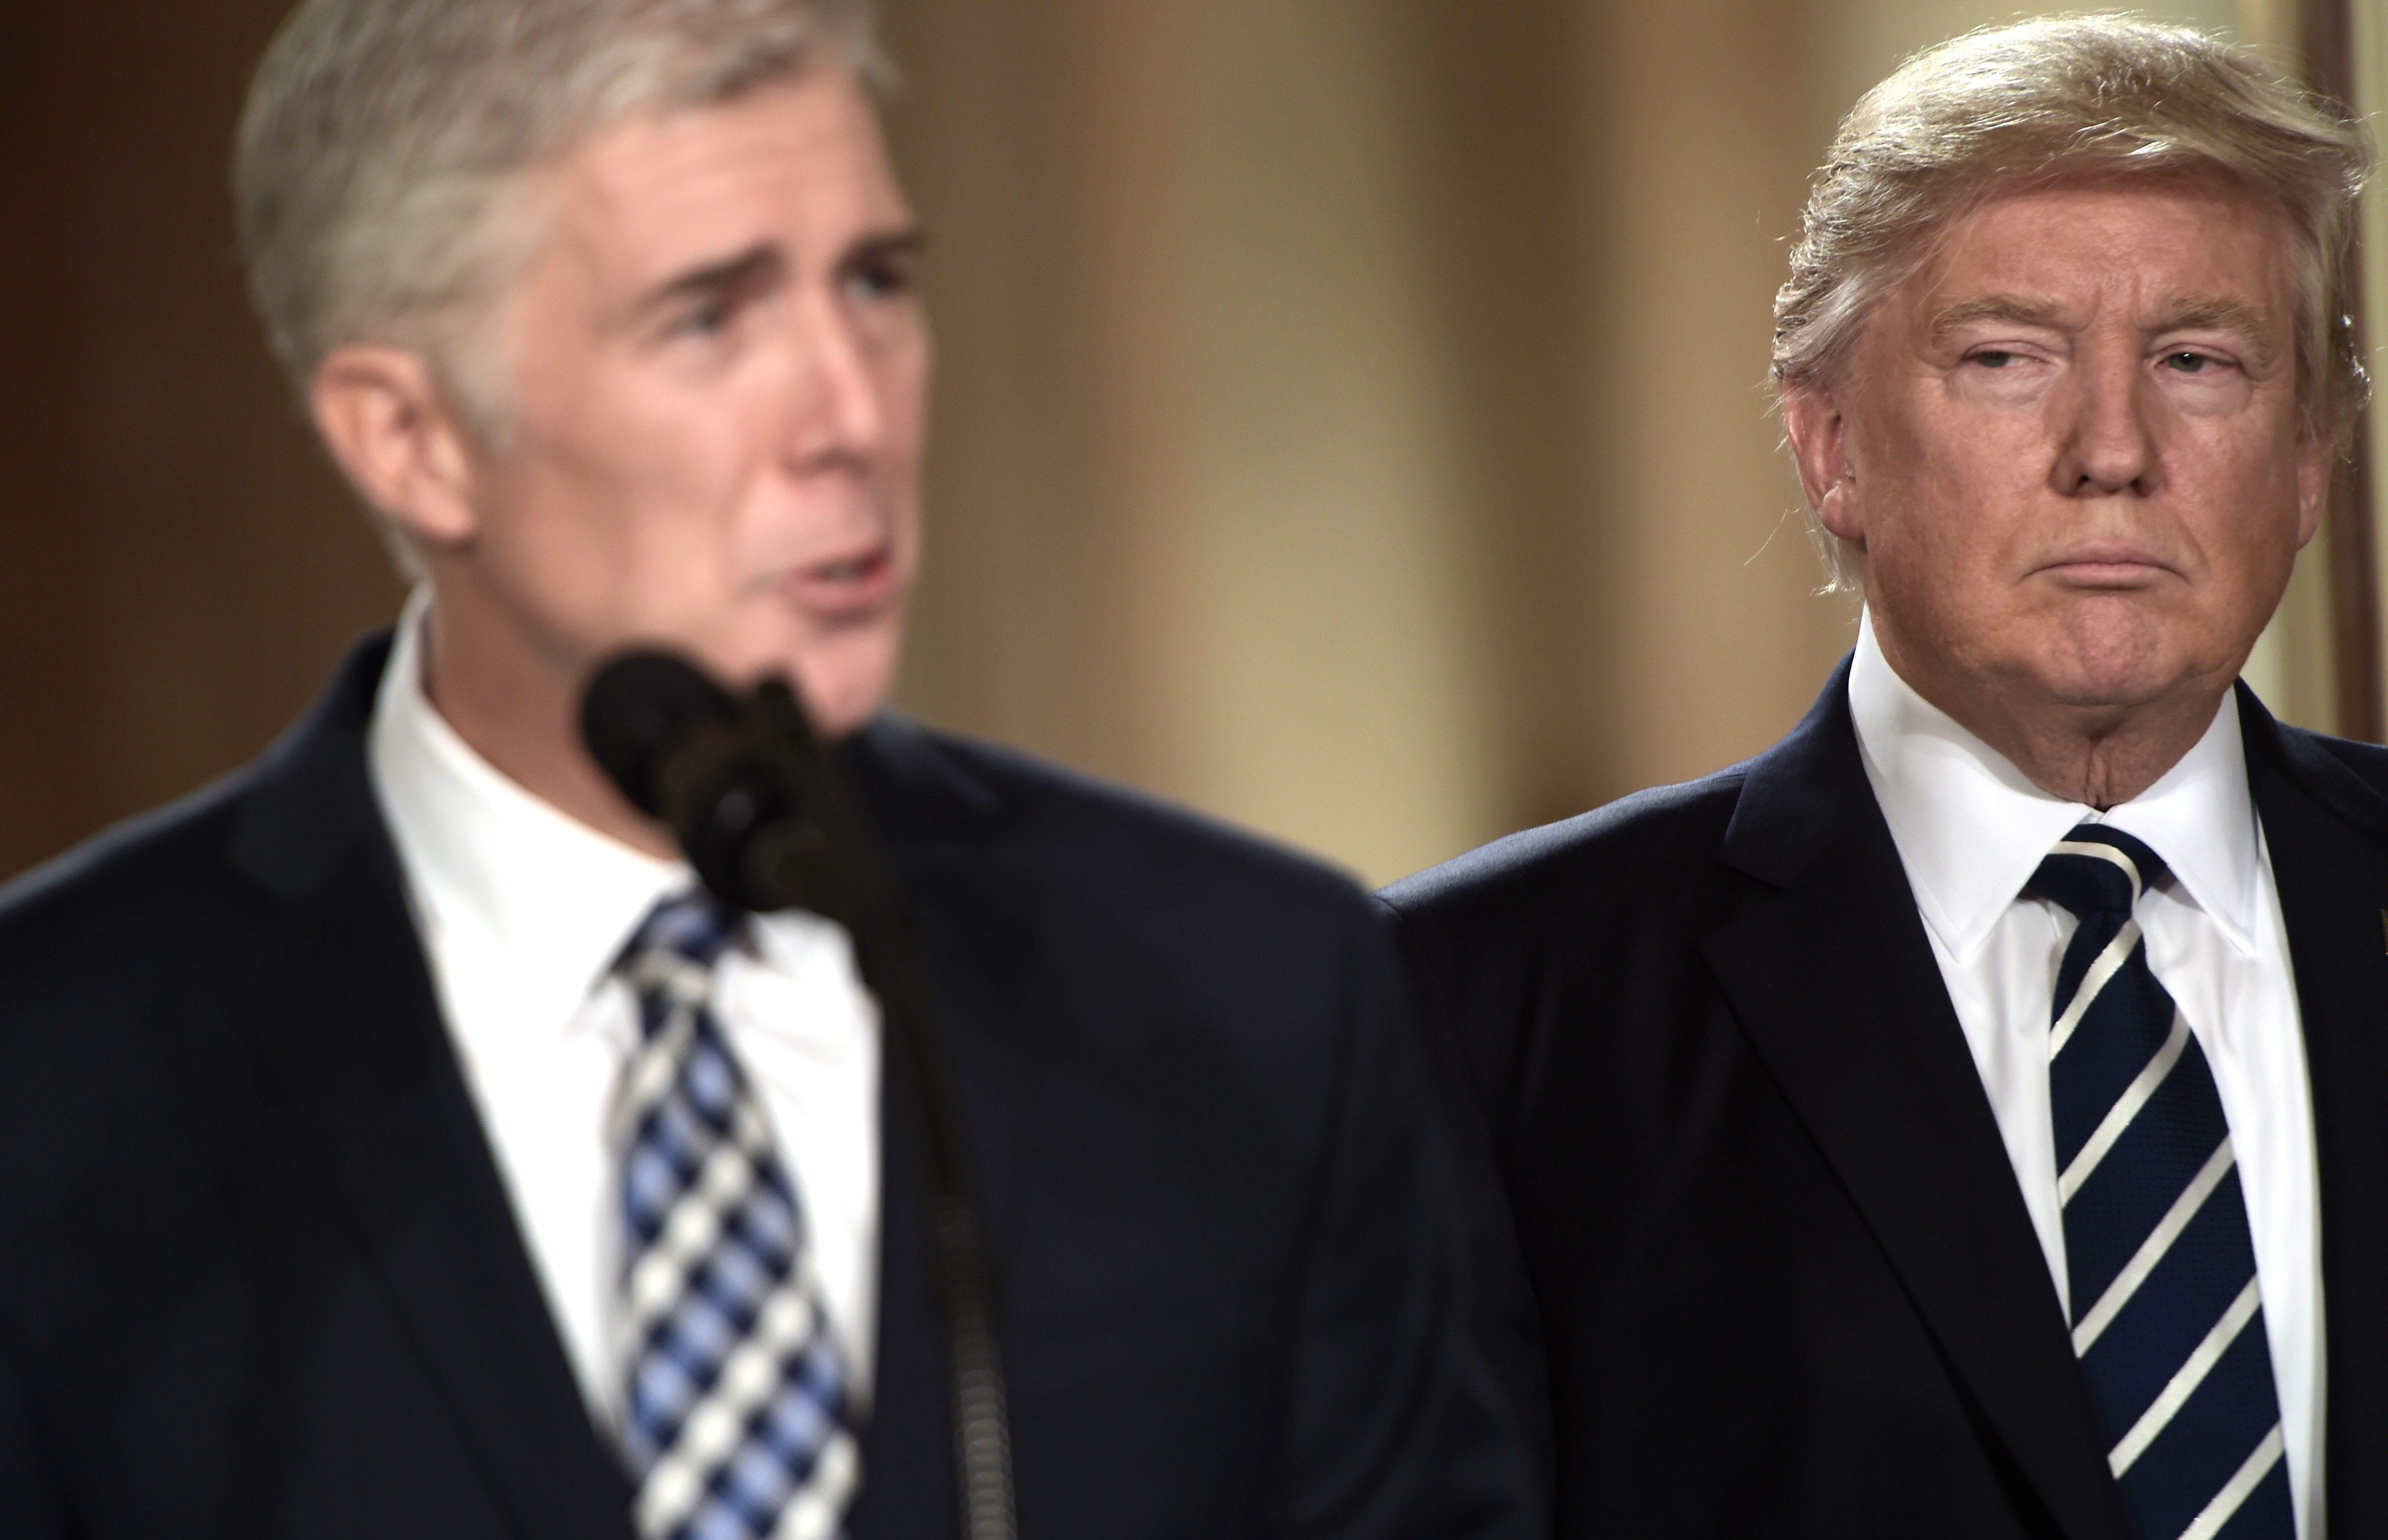 Judge Neil Gorsuch (L) speaks, after US President Donald Trump nominated him for the Supreme Court, at the White House in Washington, DC, on January 31, 2017. President Donald Trump on nominated federal appellate judge Neil Gorsuch as his Supreme Court nominee, tilting the balance of the court back in the conservatives' favor. / AFP / Brendan SMIALOWSKI        (Photo credit should read BRENDAN SMIALOWSKI/AFP/Getty Images)